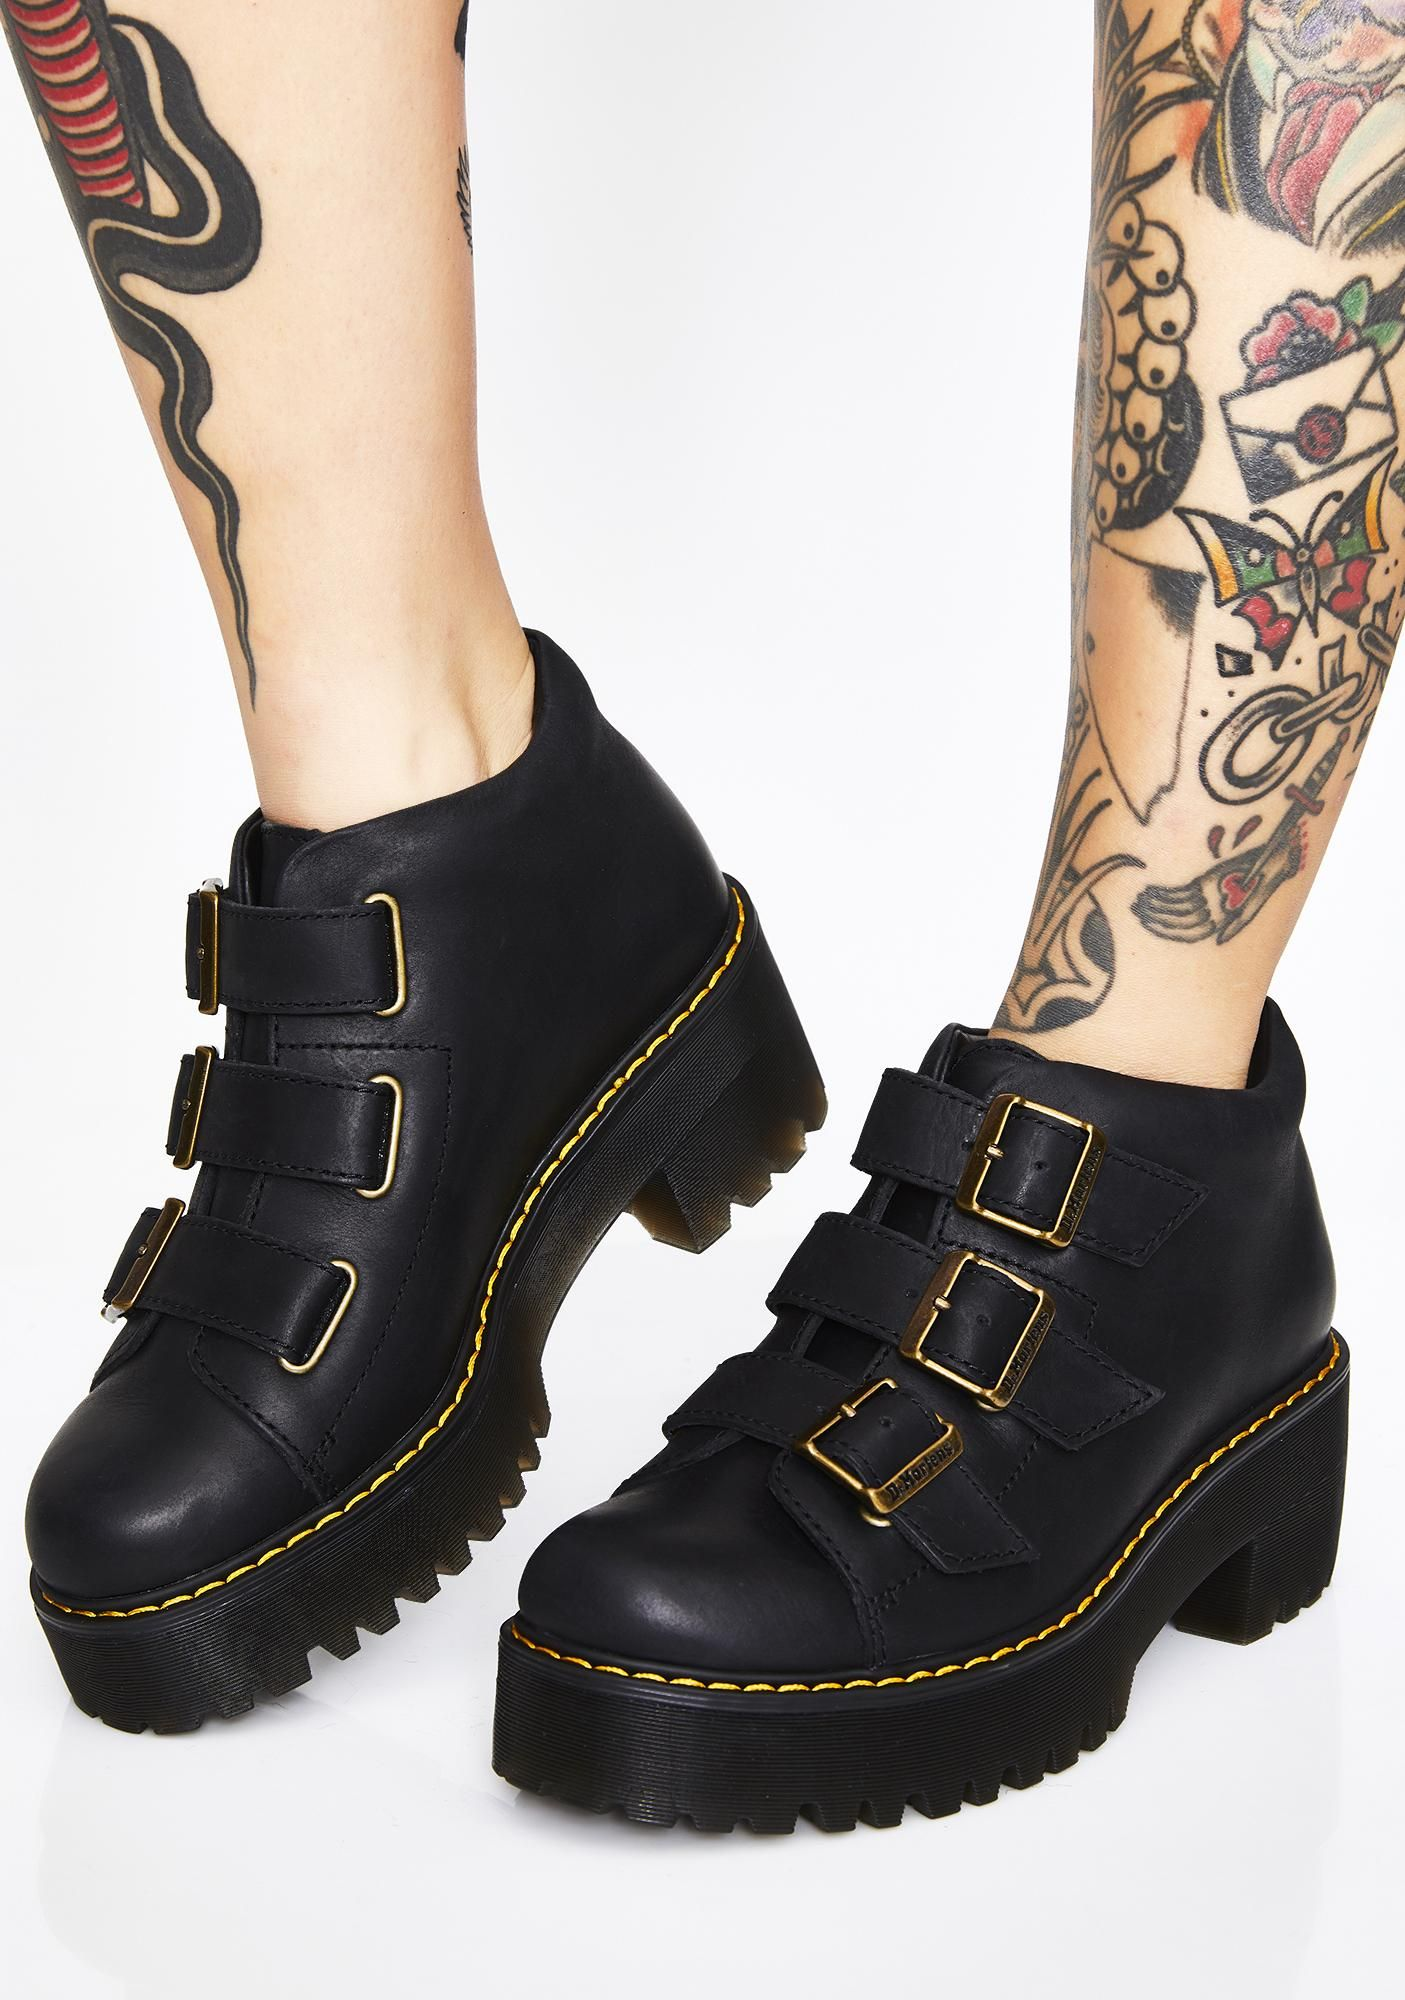 Coppola Boots in 2020 | Boots, Dr martens boots, Combat boots